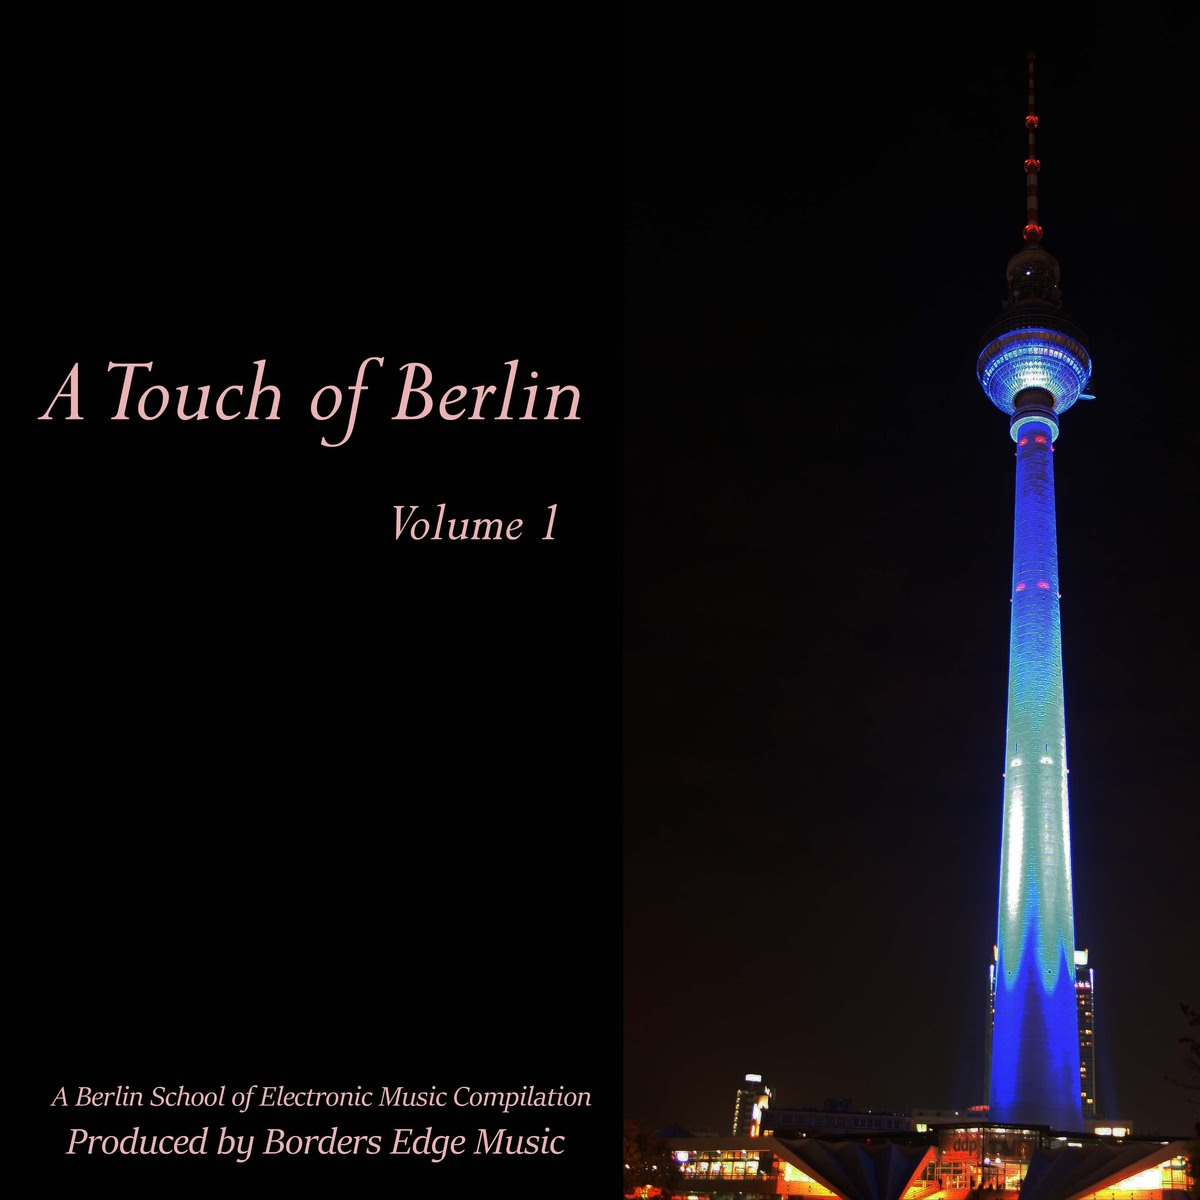 A Touch of Berlin Vol. 1 - Synth&Sequences Review